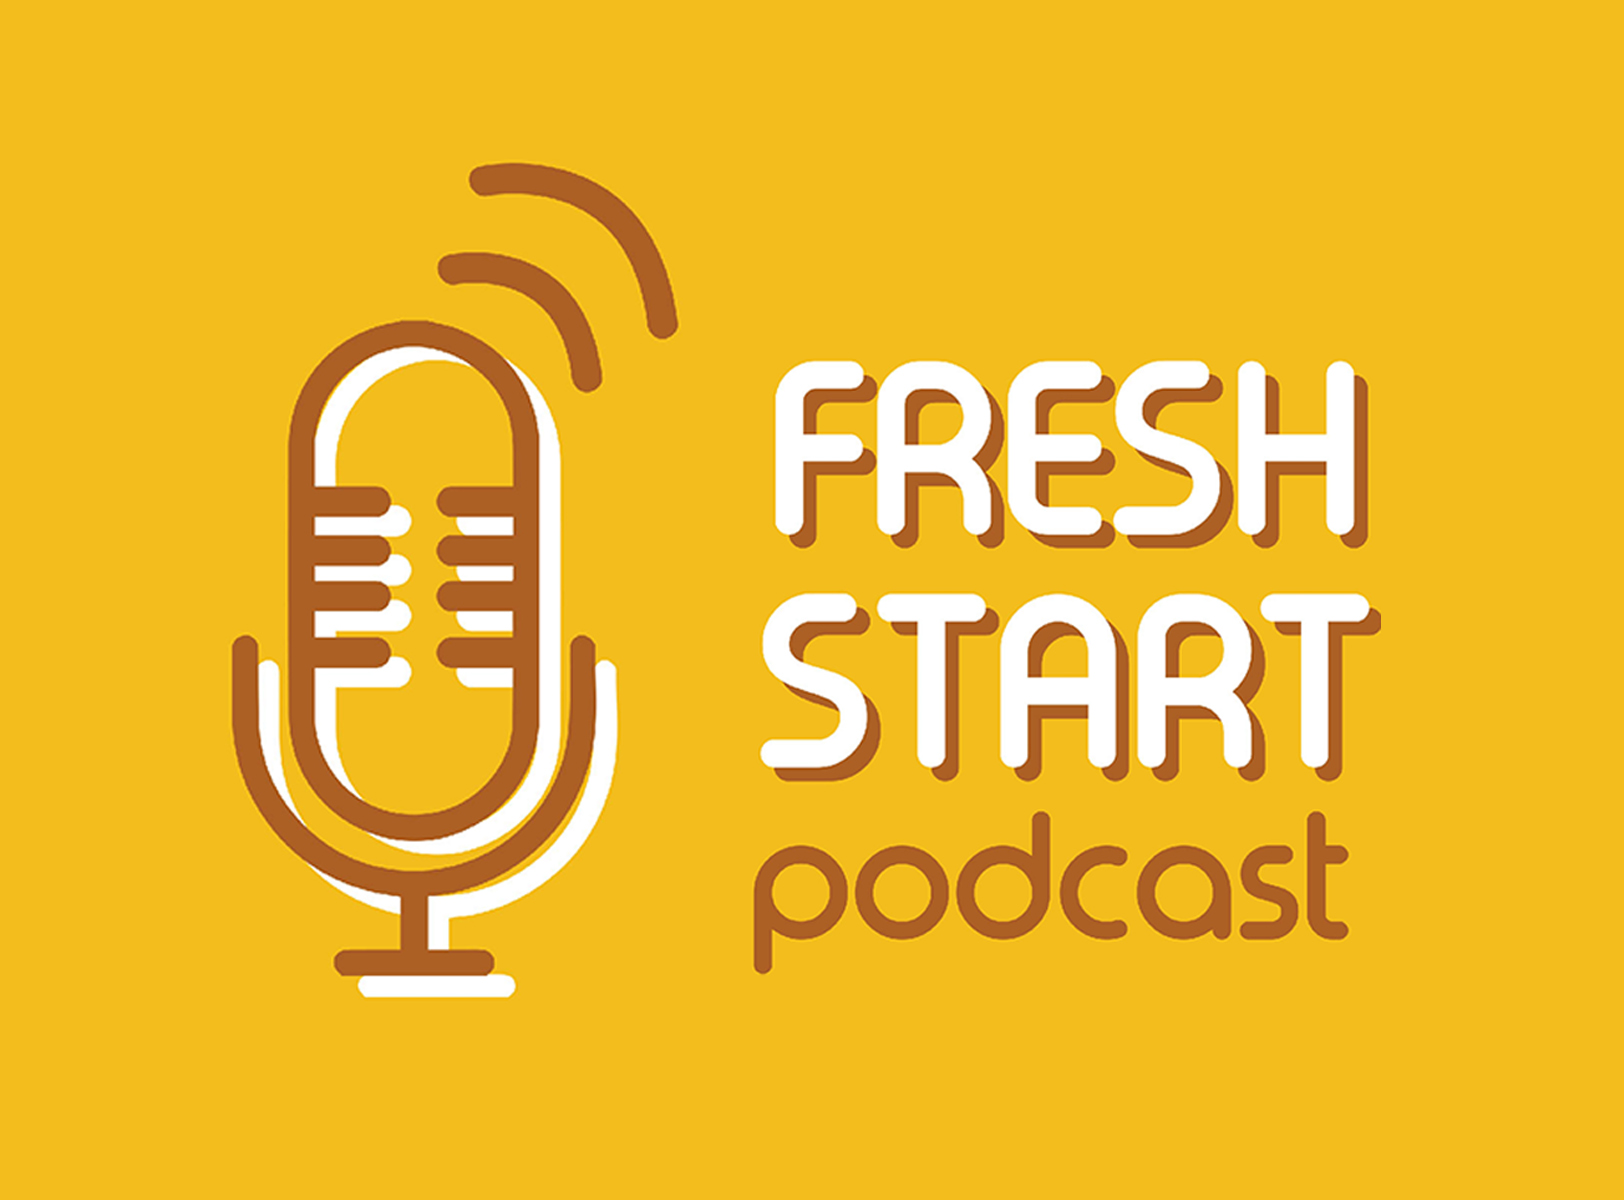 Fresh Start: Podcast News (7/21/2019 Sun.)